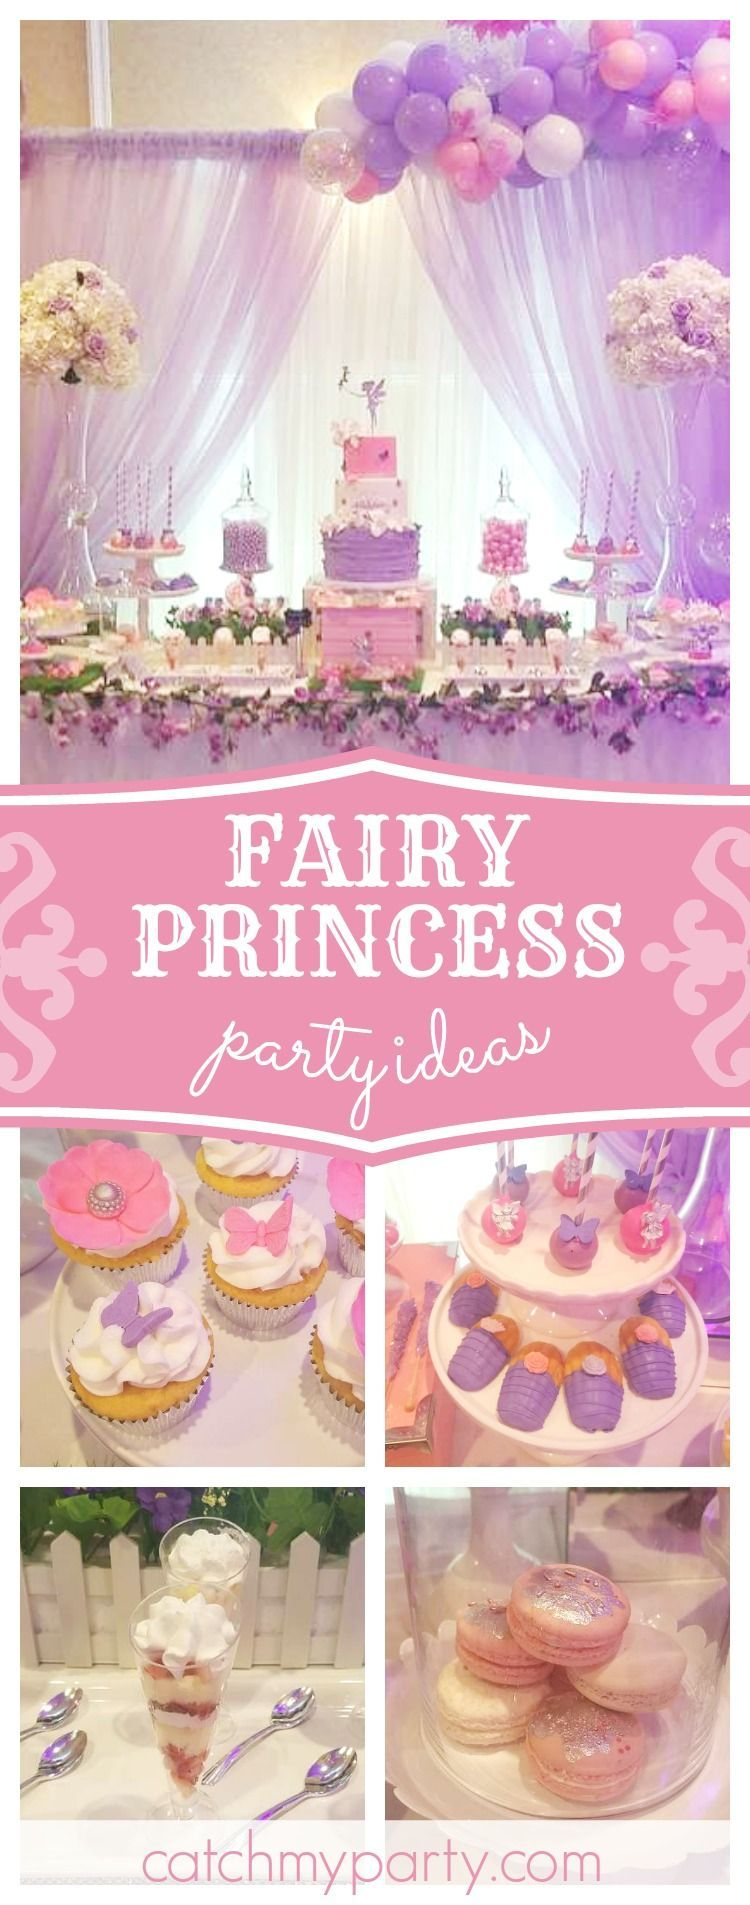 Dont Miss This Incredible Fairy Princess 1st Birthday Party The Balloon Garland Is Amazing See More Ideas And Share Yours At CatchMyparty